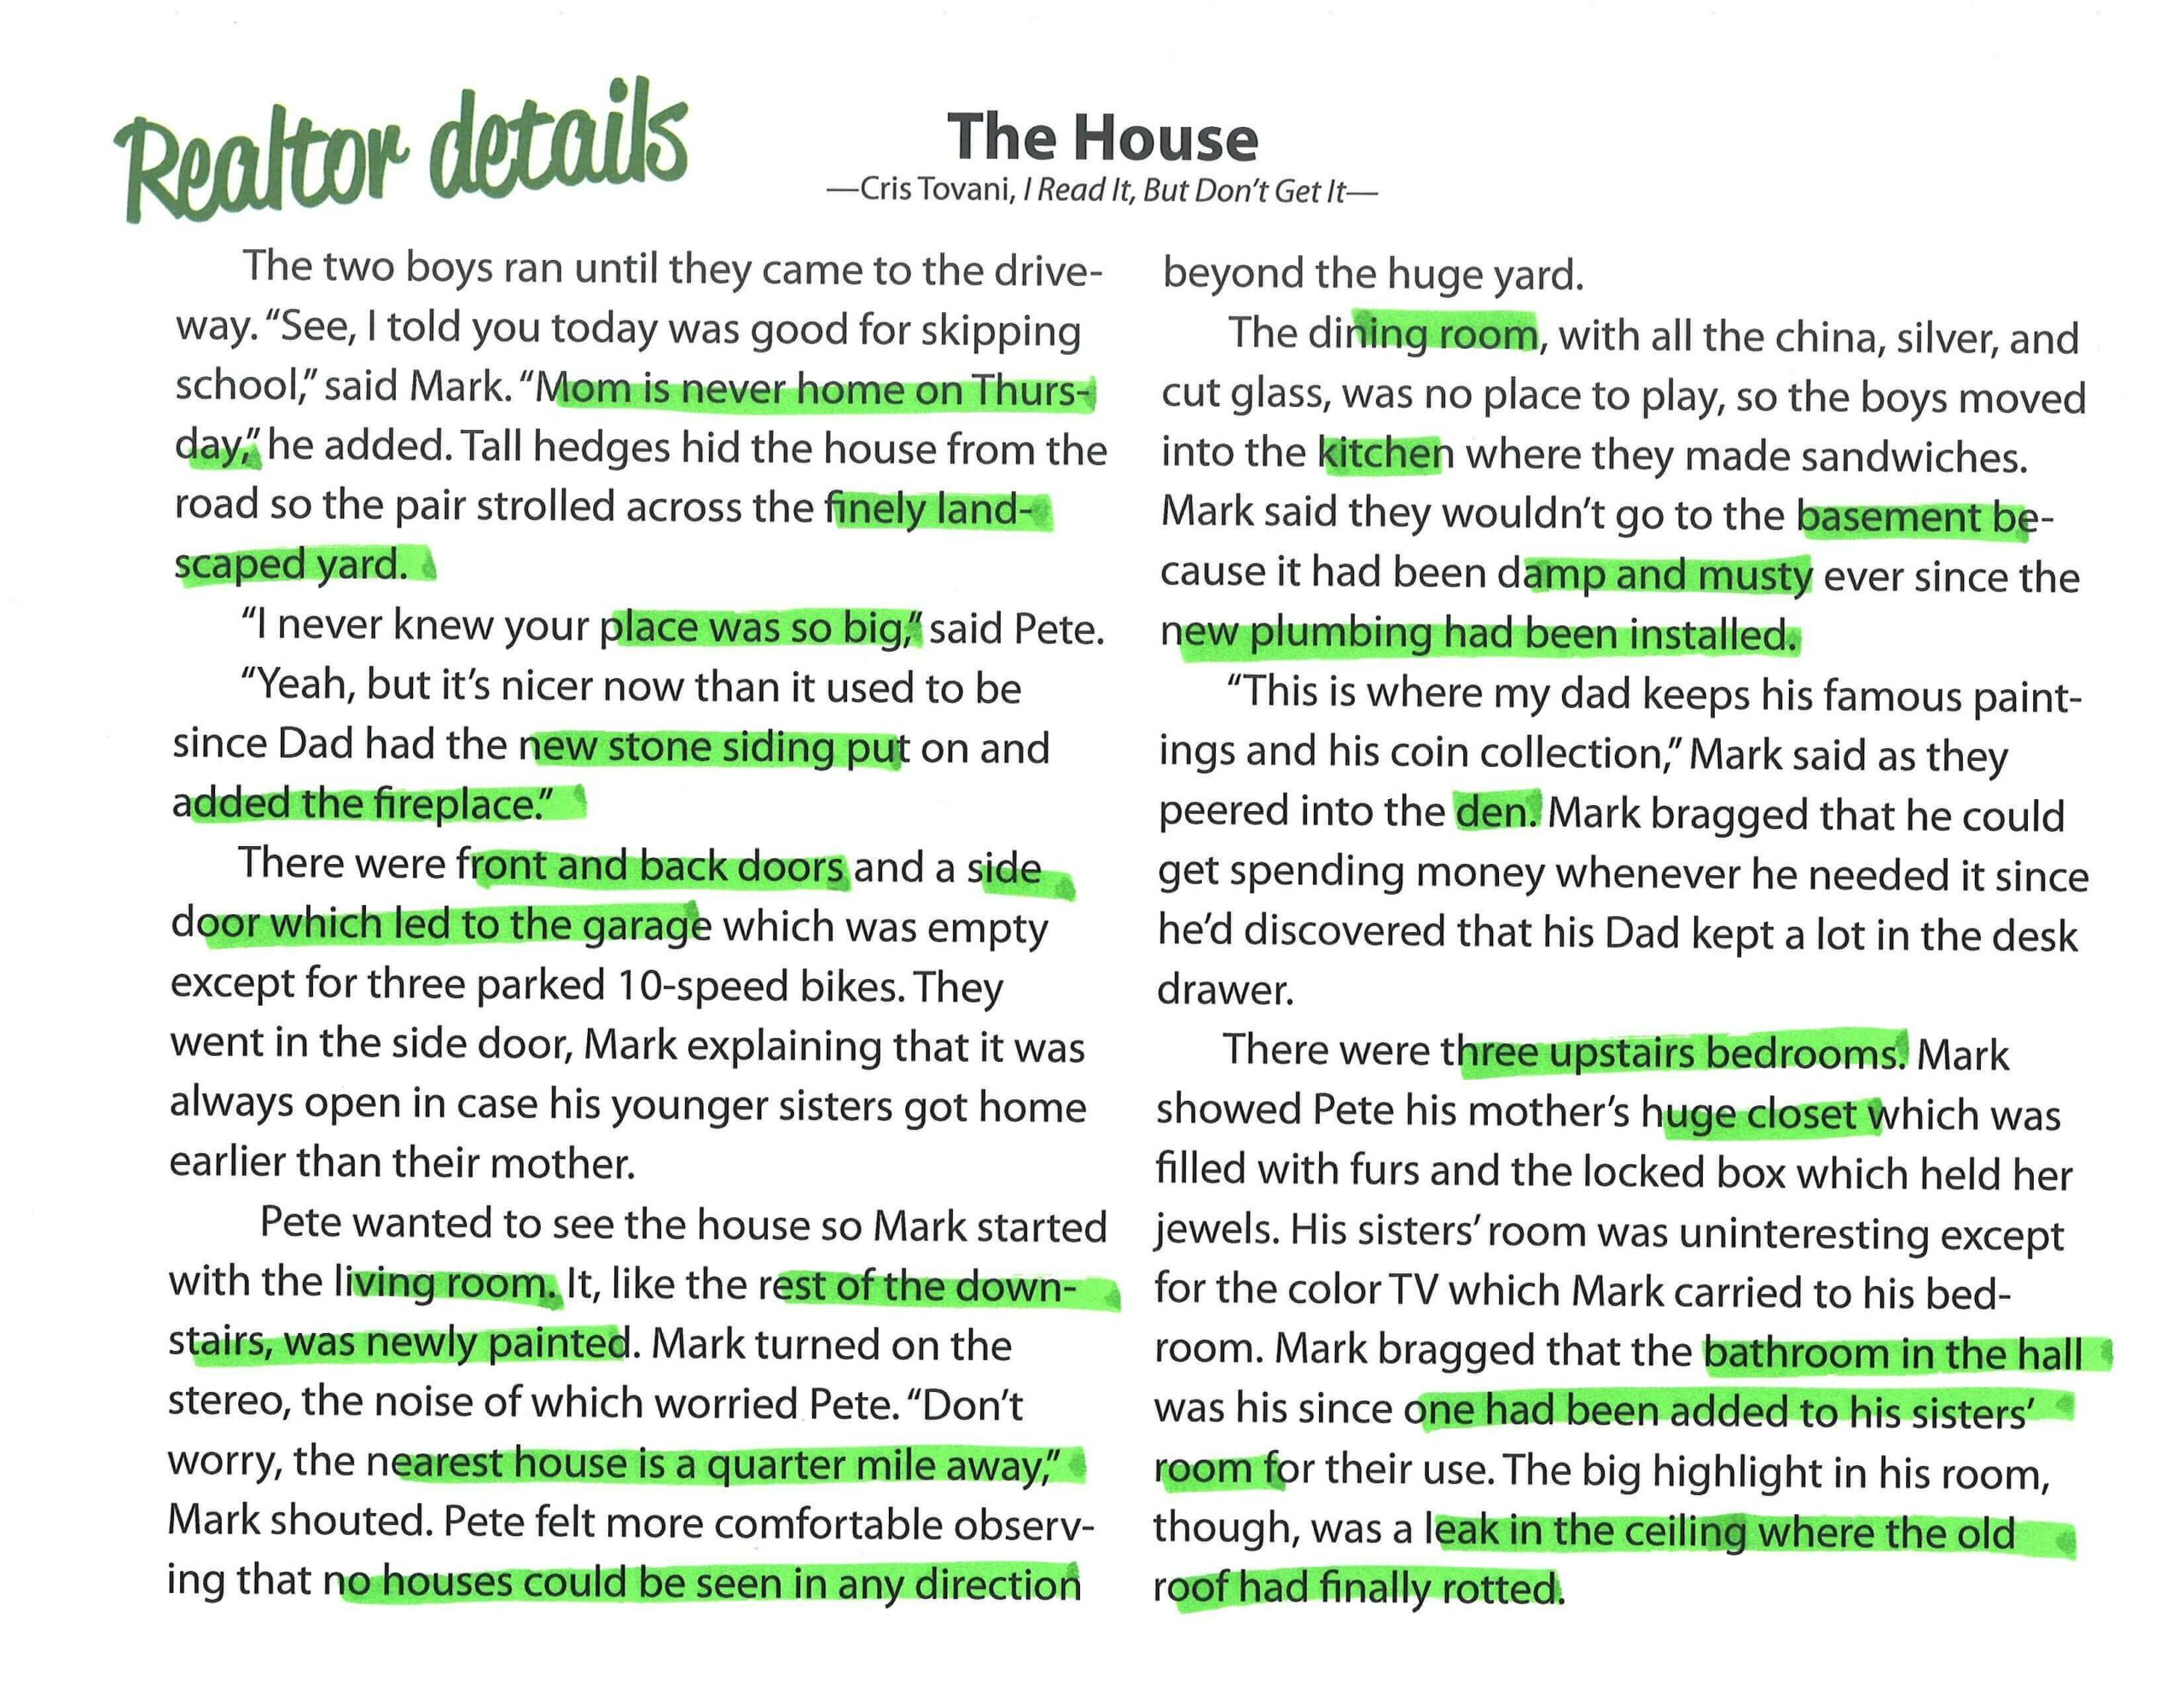 "Annotate Based on Reading Purpose: ""The House"" The Realtor Details"